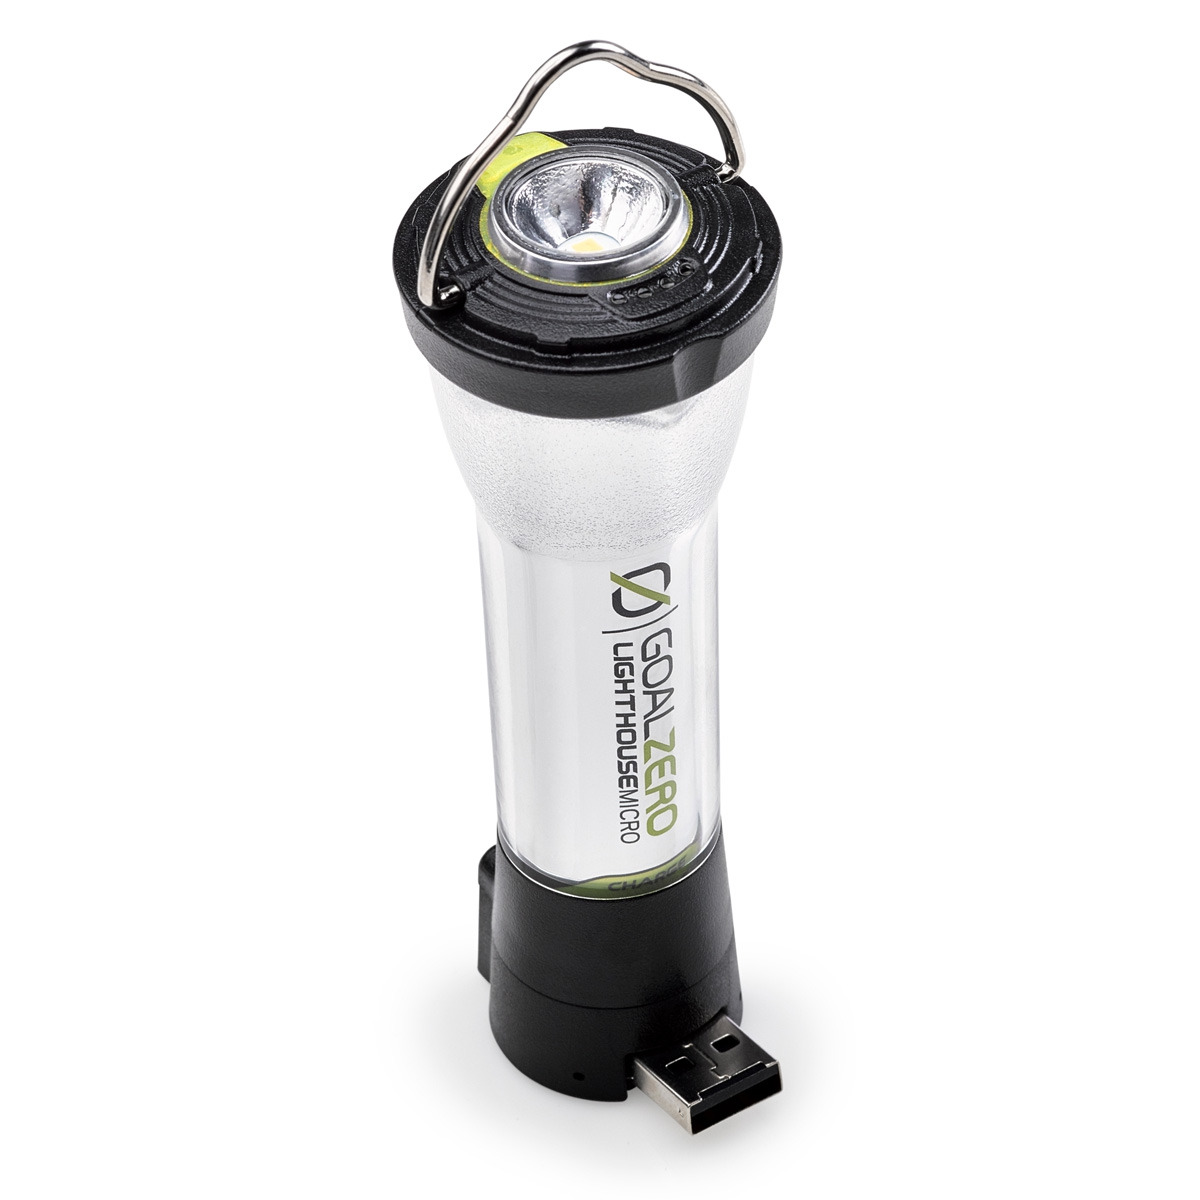 Lighthouse Micro Charge - LED Laterne mit USB Ladeausgang